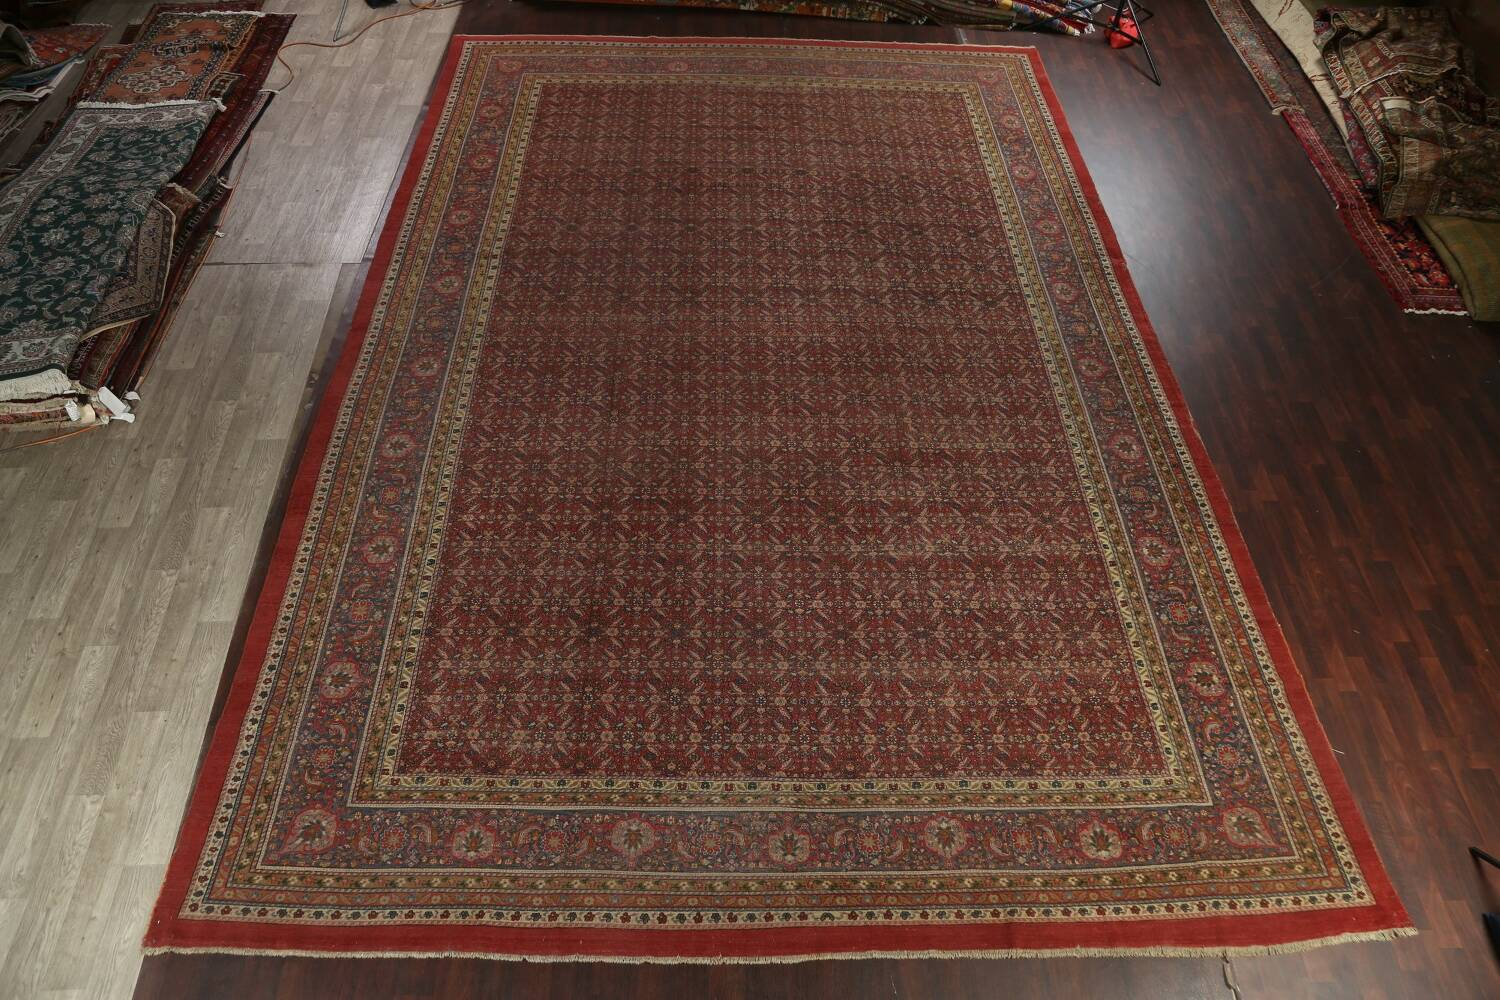 Antique Vegetable Dye Sultanabad Persian Rug 13x20 image 16